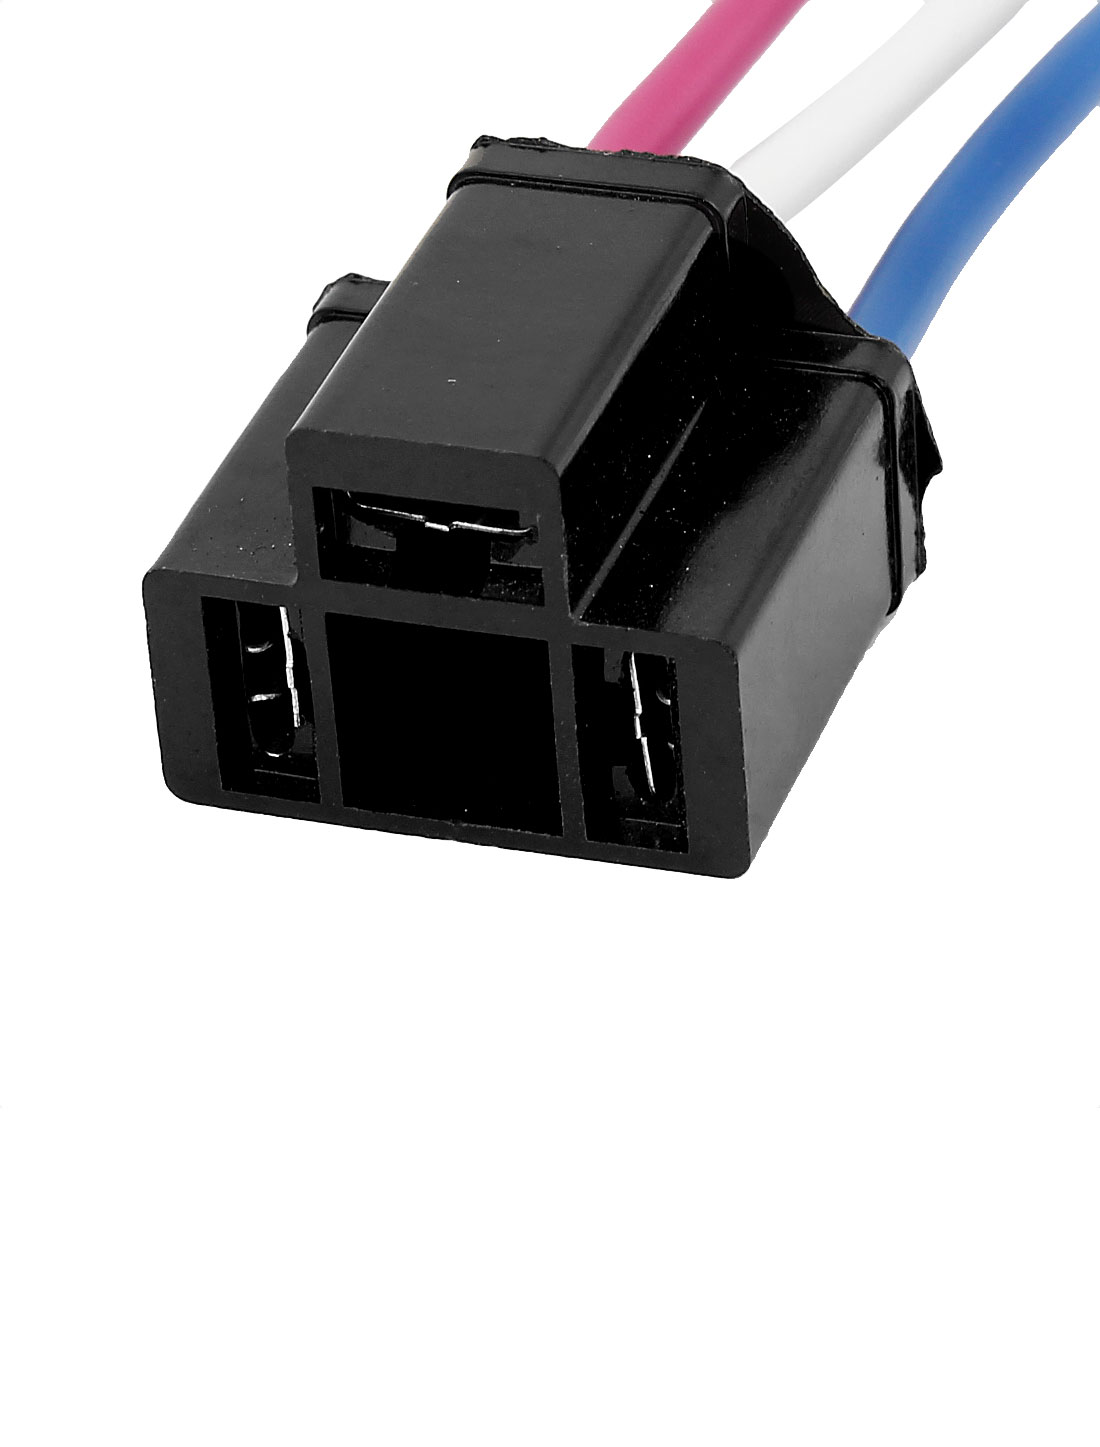 auto car alarm relay harness cable 3 wire end cermic h4 socket black walmart canada  [ 2000 x 2000 Pixel ]